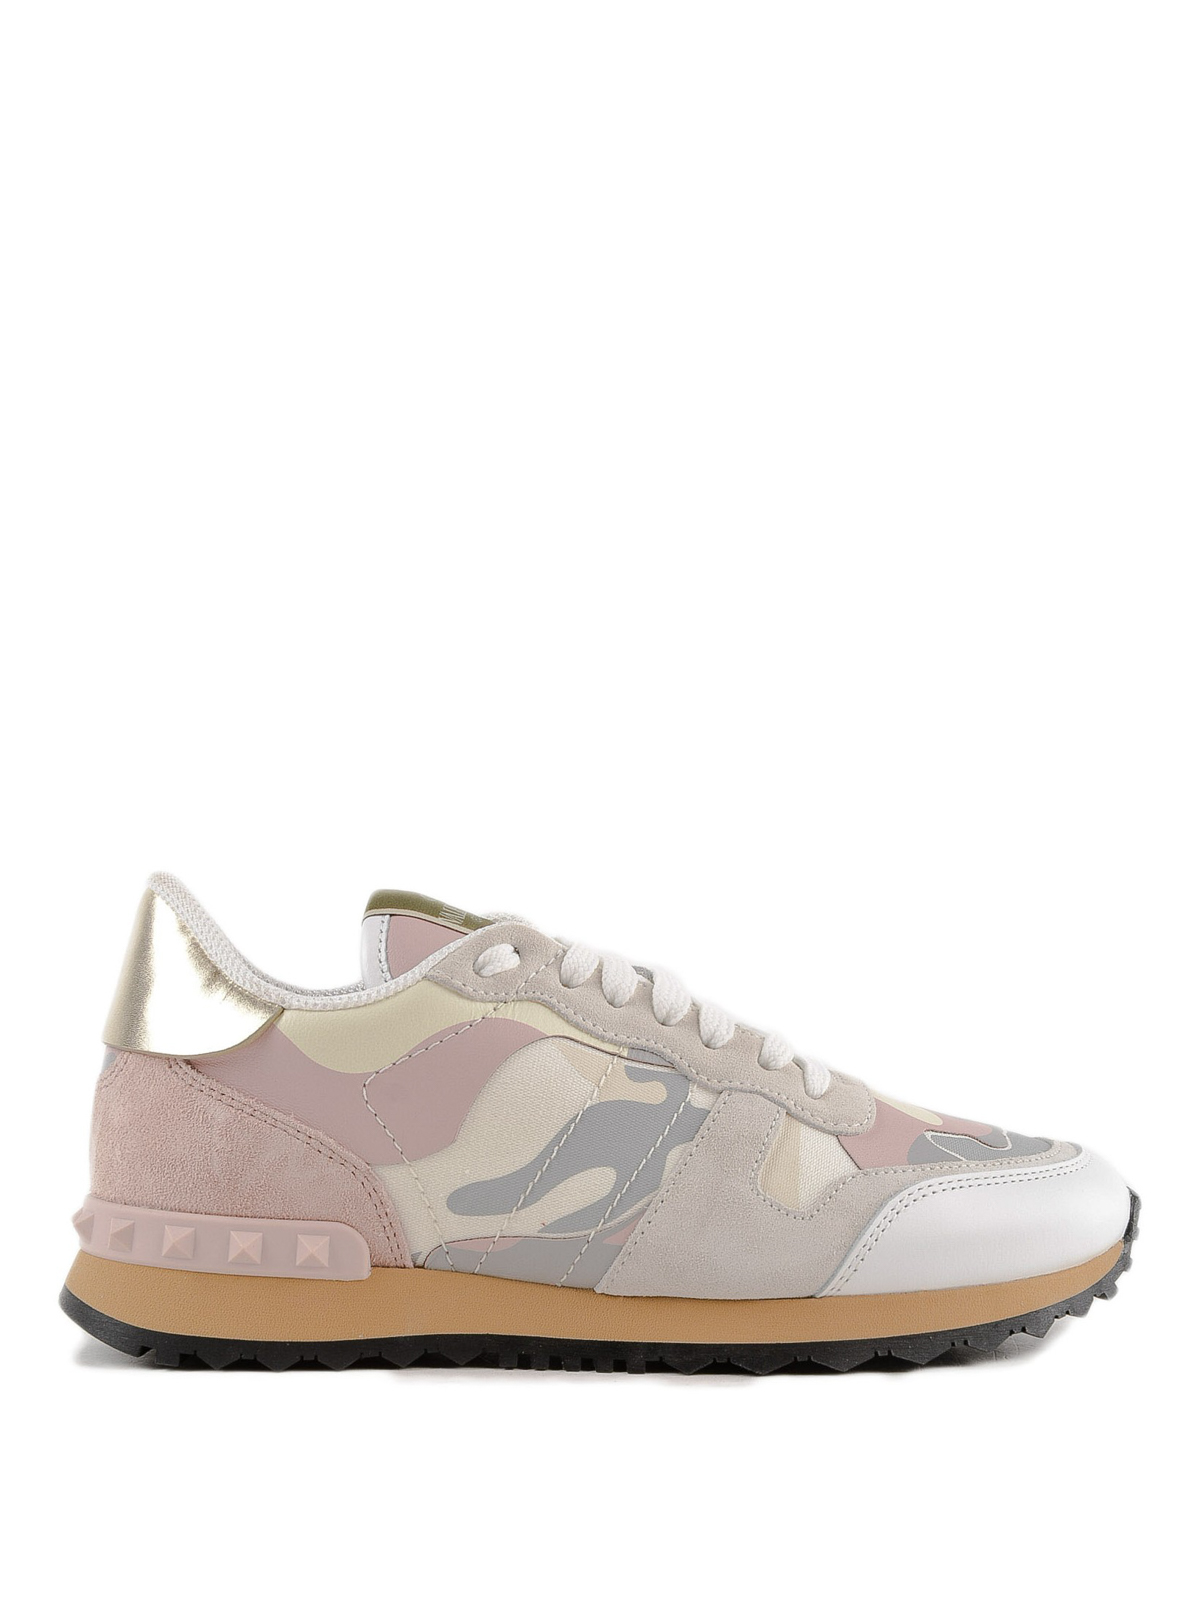 a1faa2a3fa9c9 Valentino Garavani - Pink Rockrunner camouflage sneakers - trainers ...